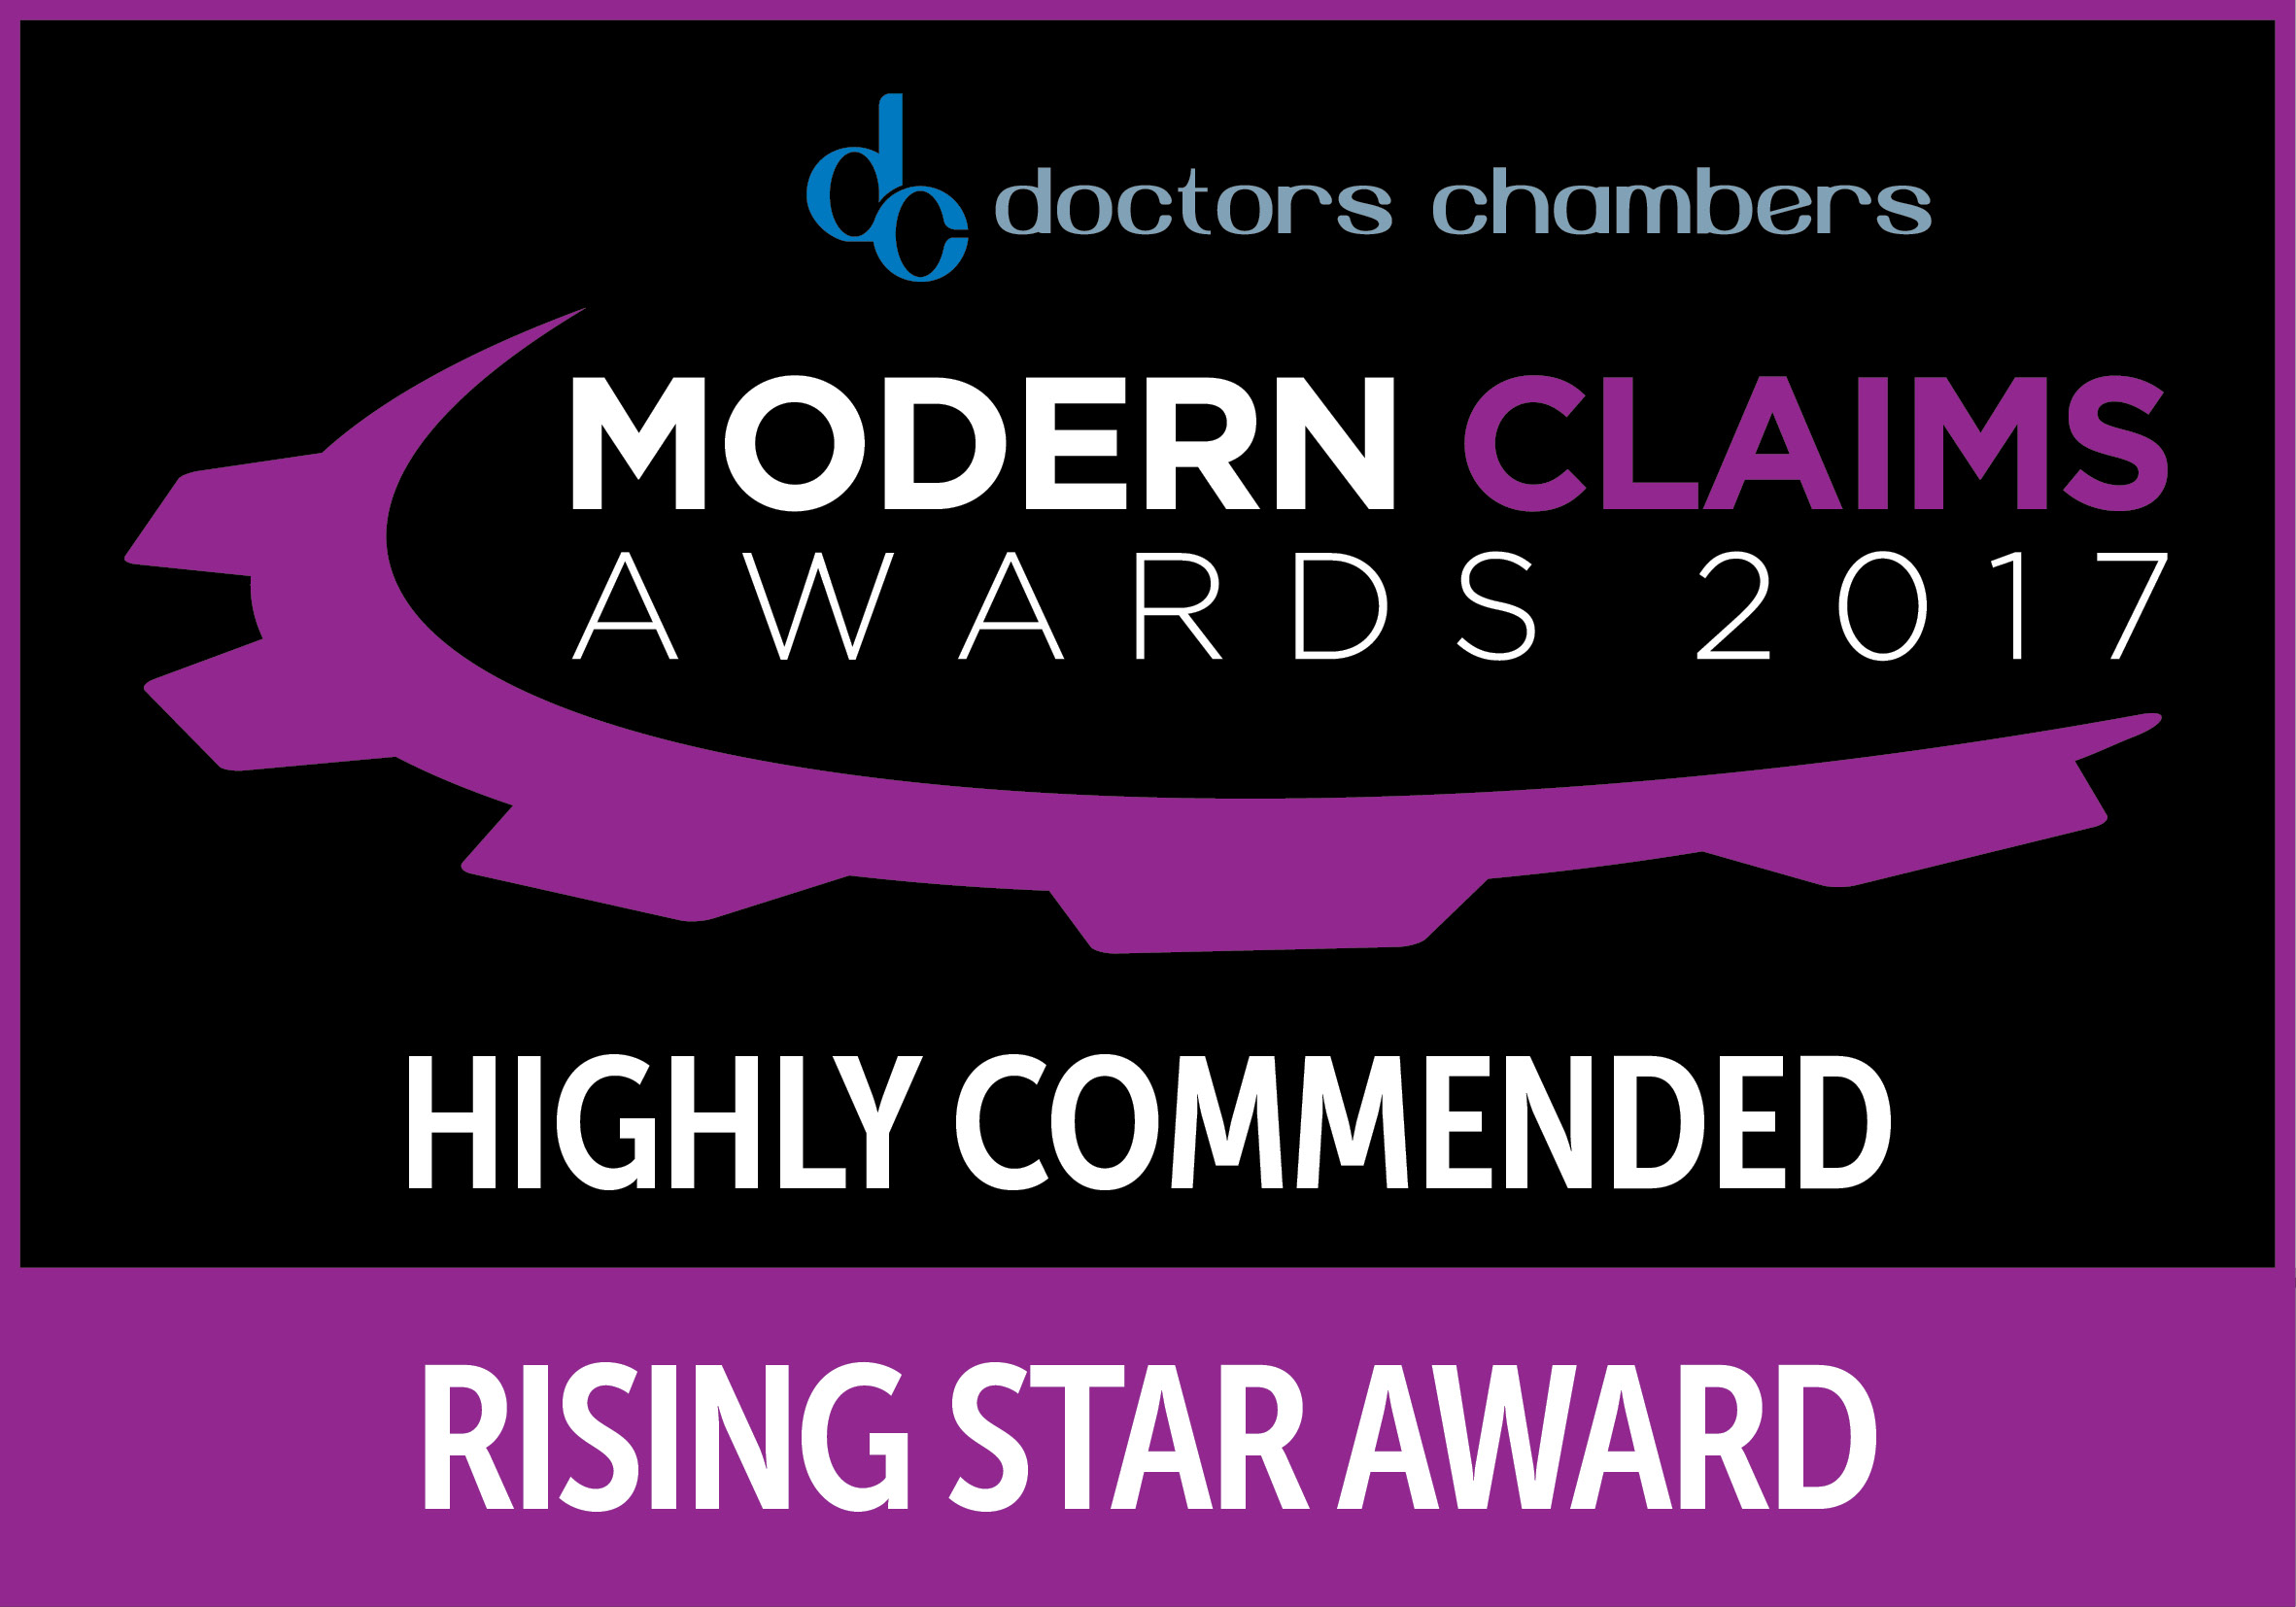 modern-claims-awards-2017-hc-logos-9